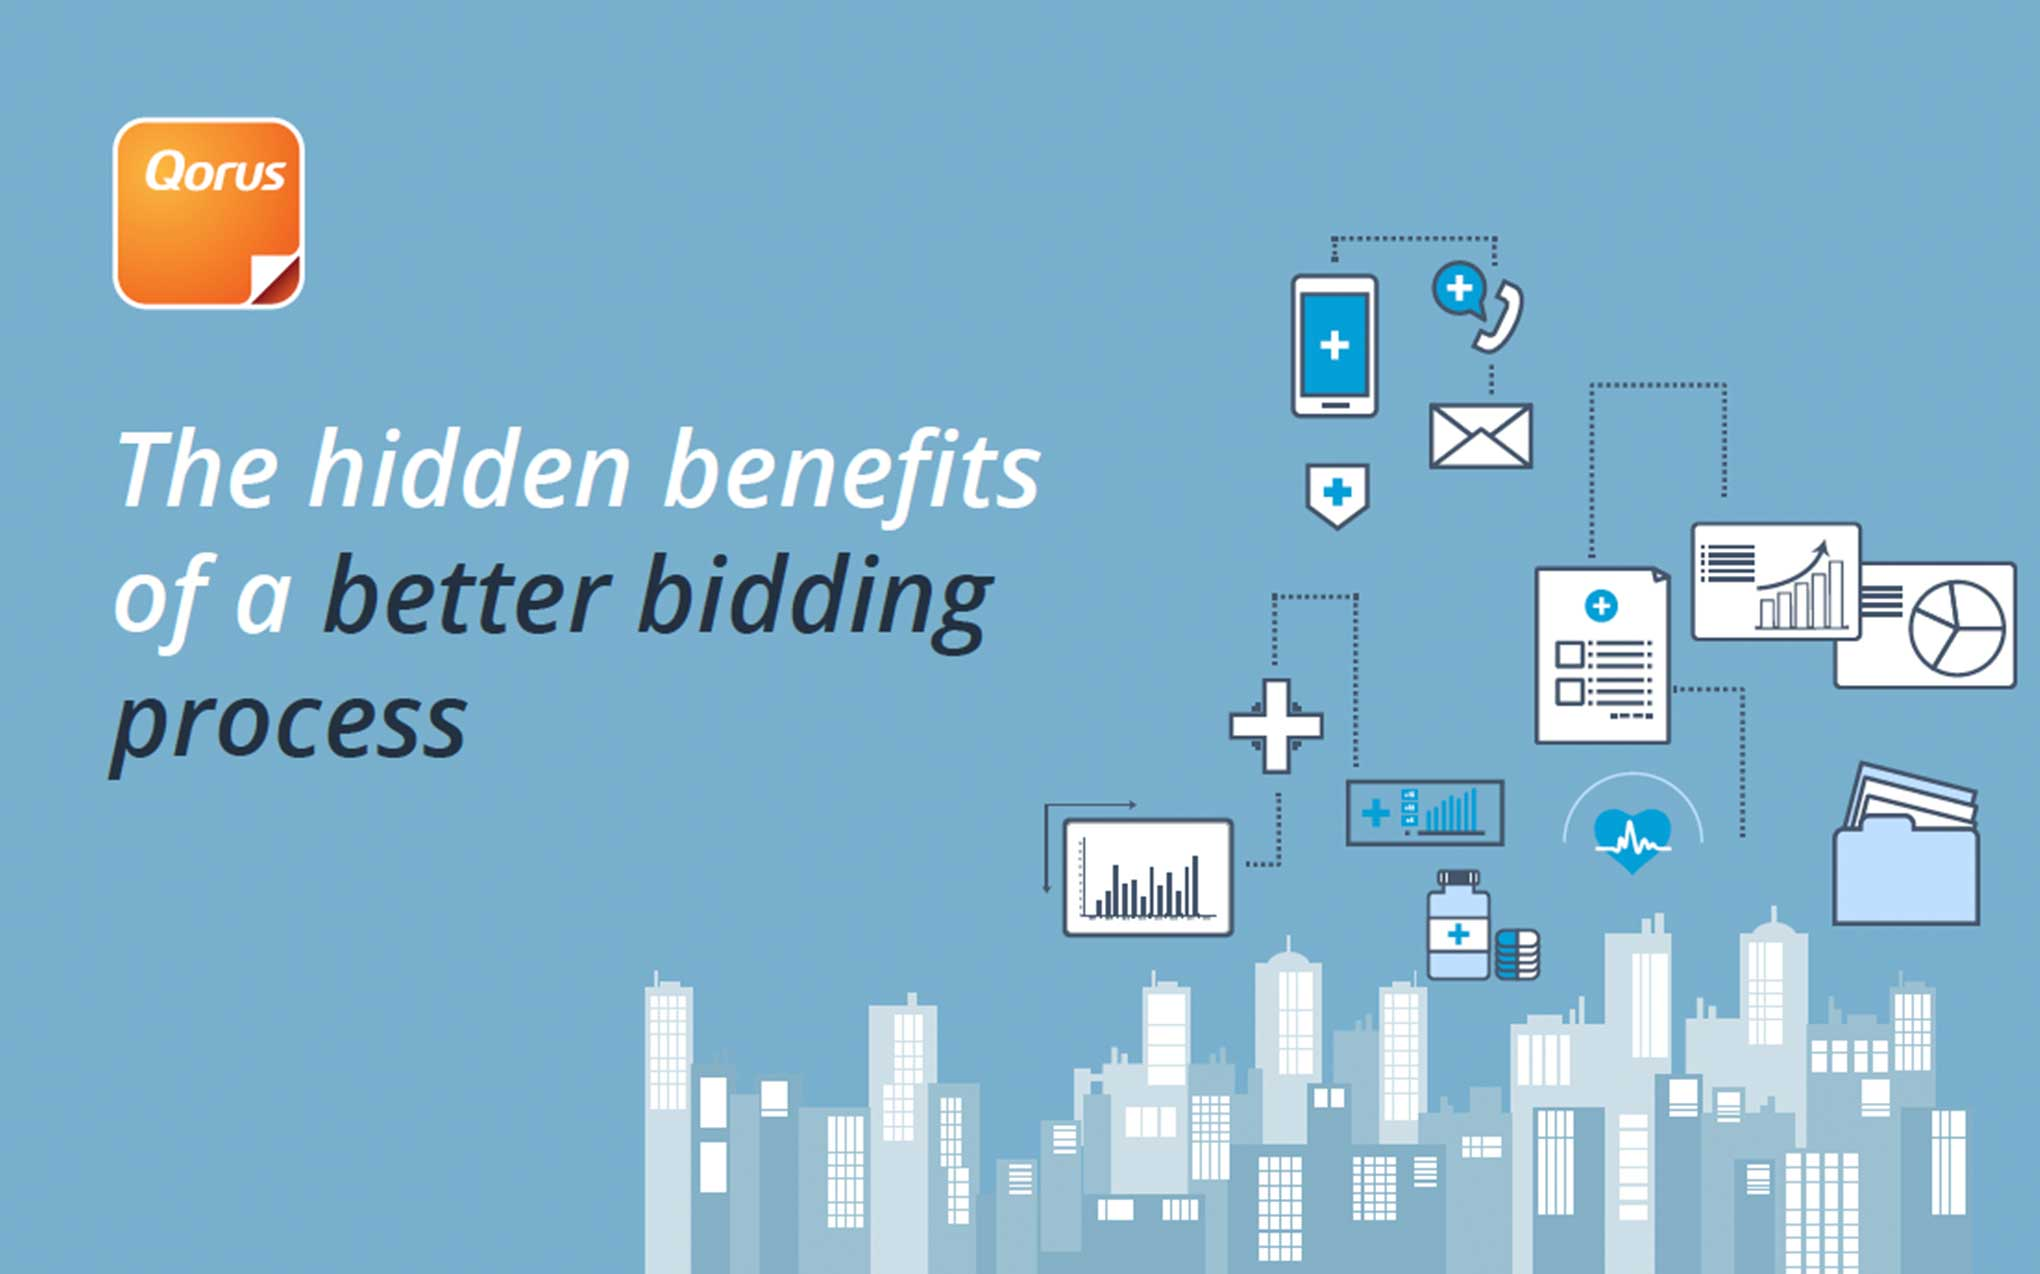 hidden-benefits-bidding-process.jpg